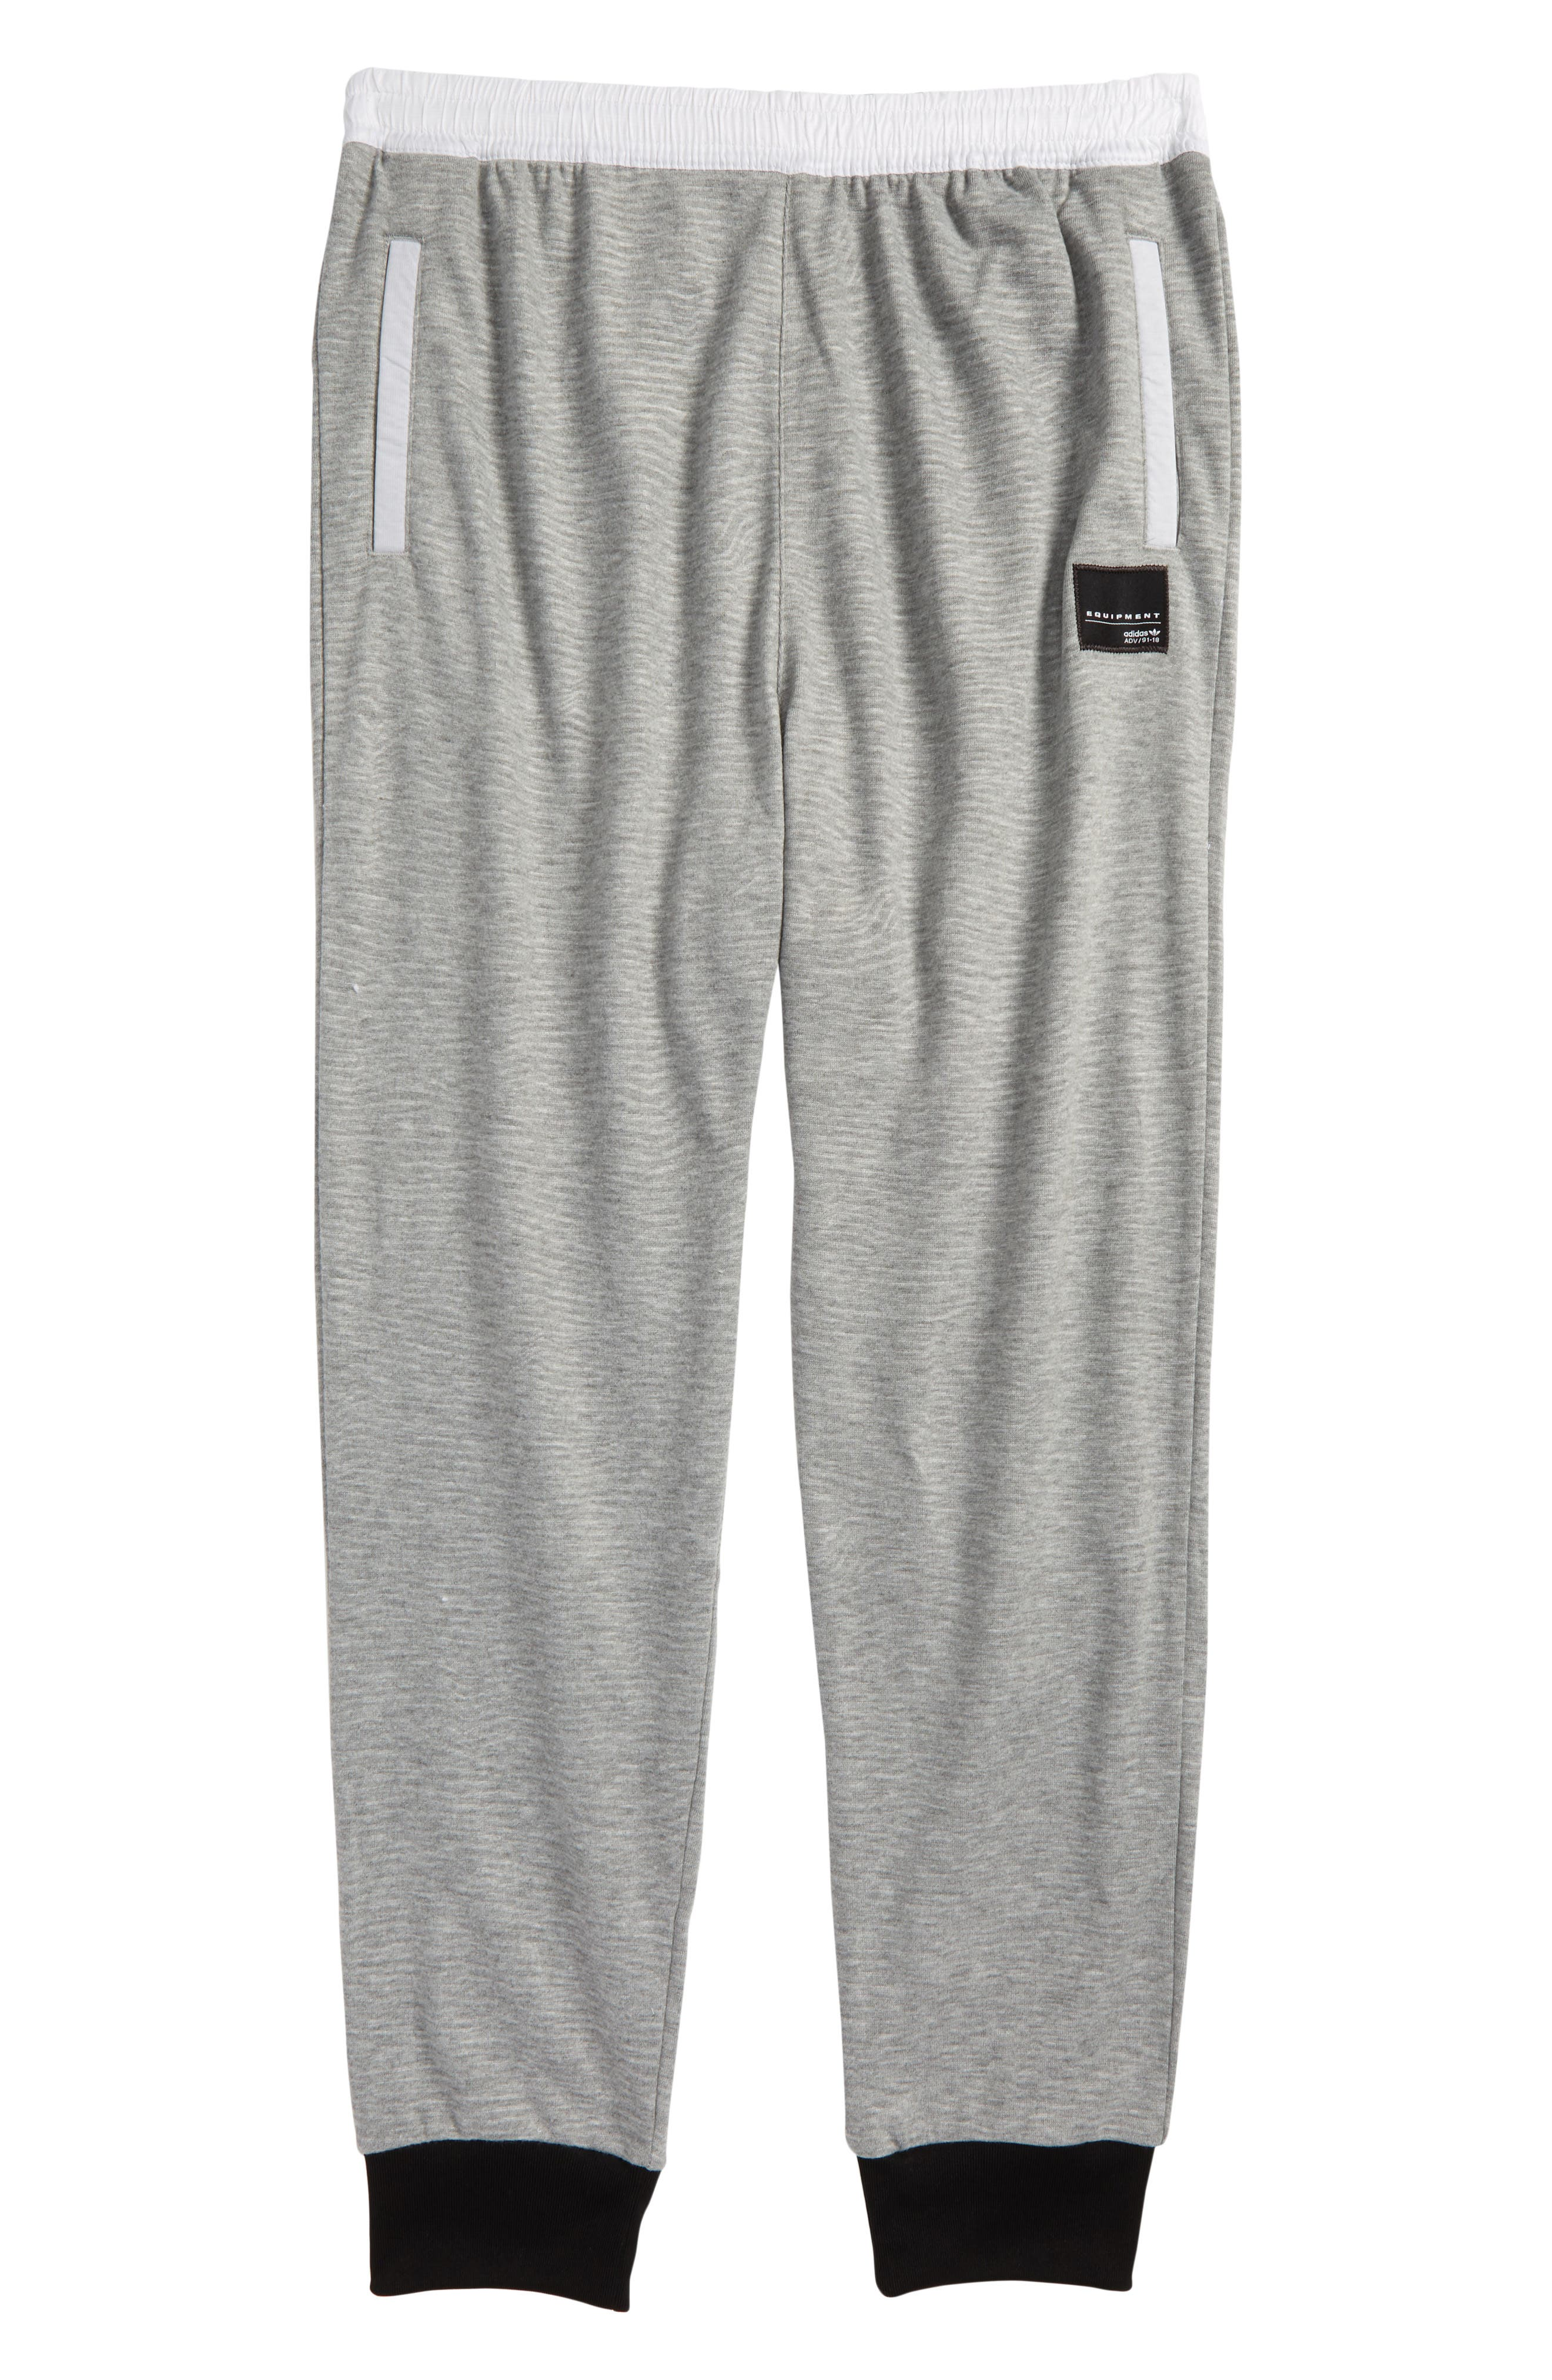 EQT Track Pants,                         Main,                         color, Medium Grey Heather/ Black